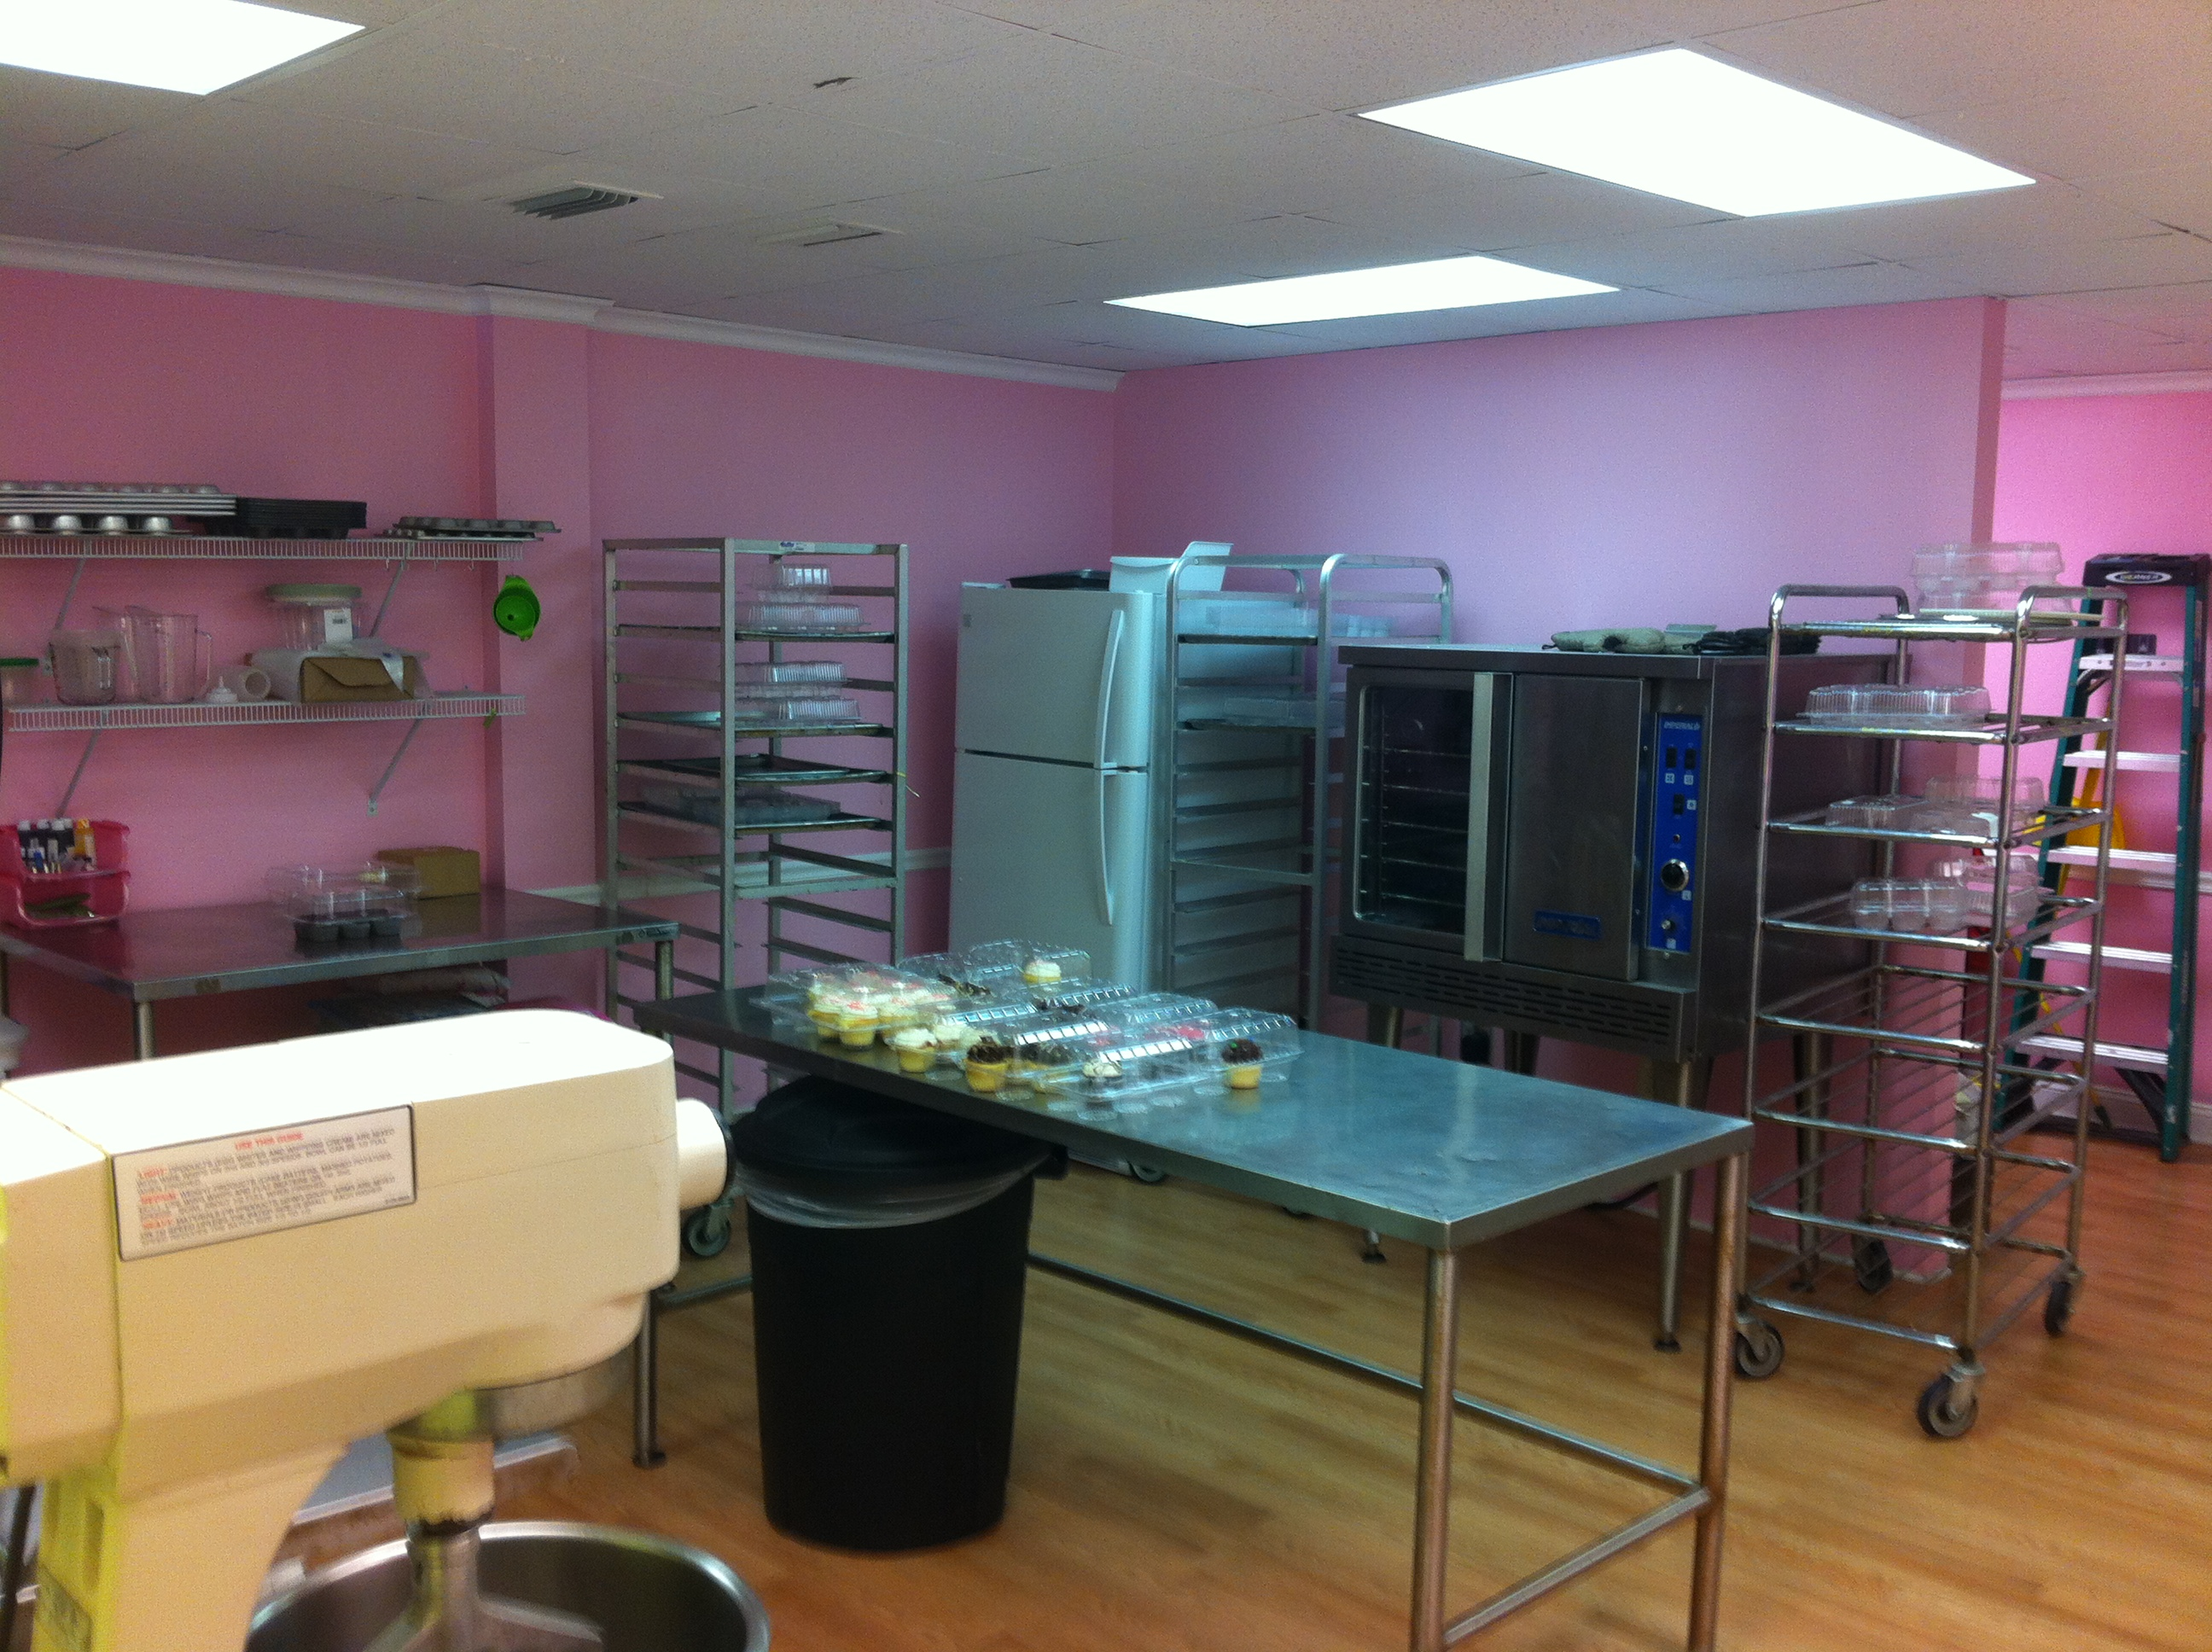 Unforgettable Cupcake Shop and Food Truck For Sale